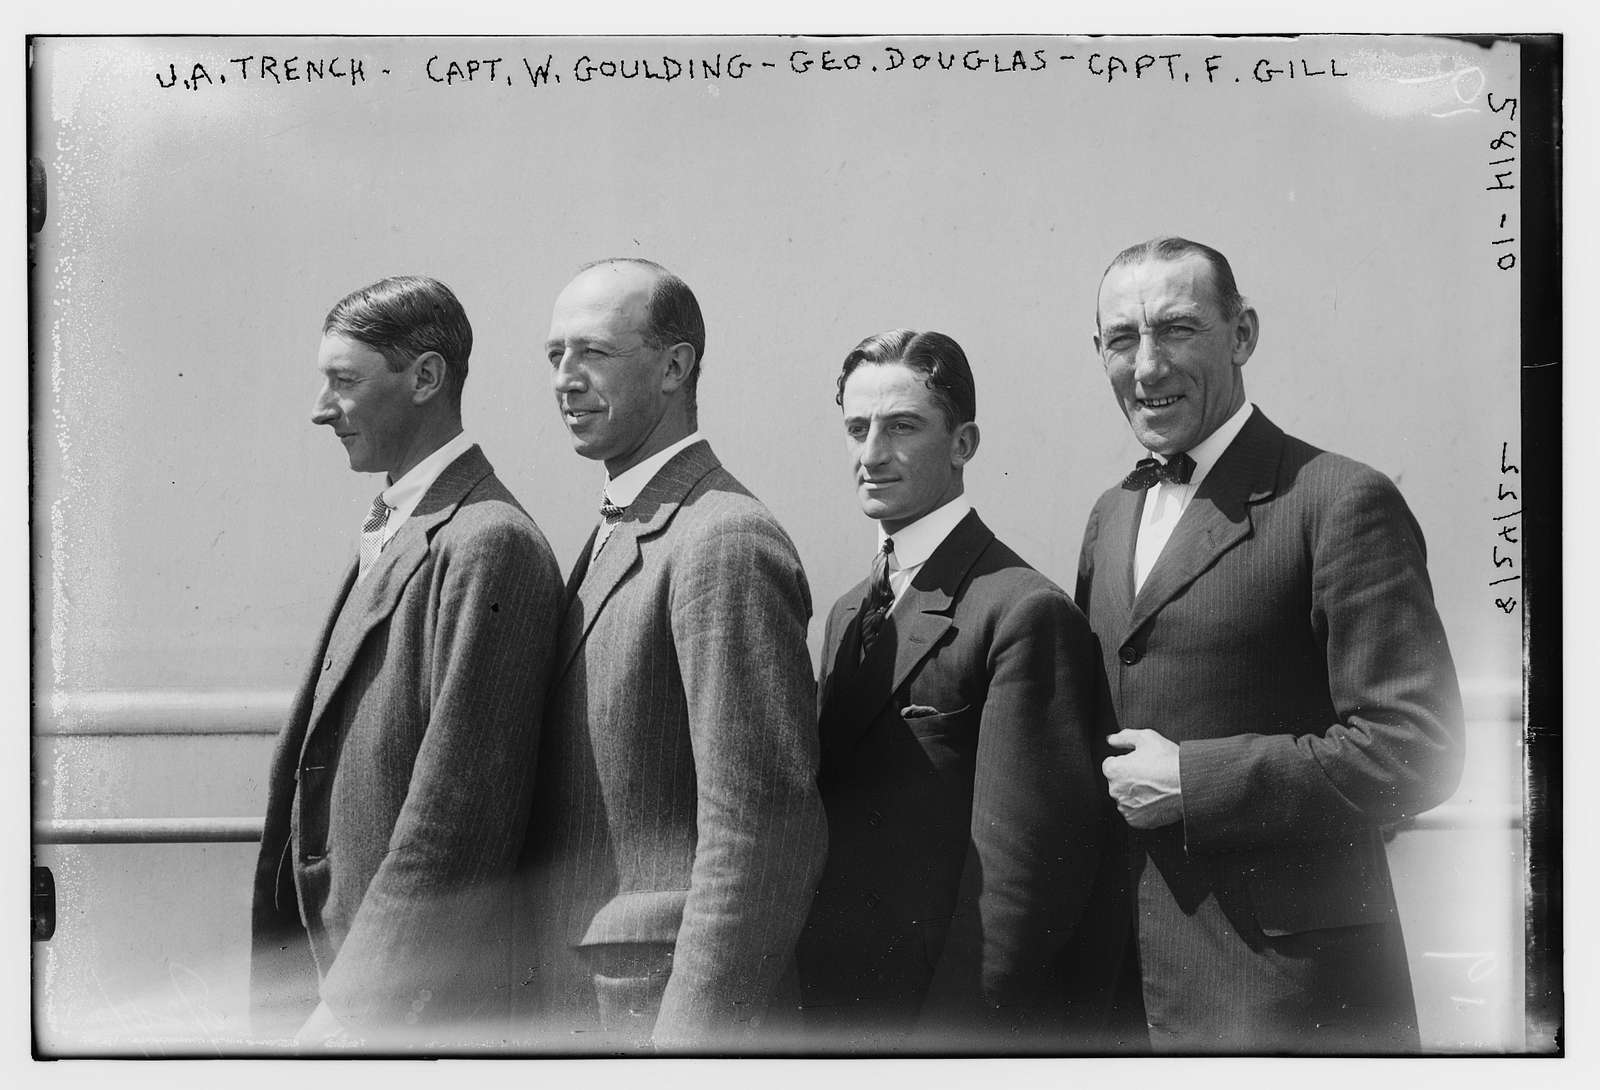 J.A. Trench, Capt. W. Goulding, Geo. Douglas and Capt. F. Gill